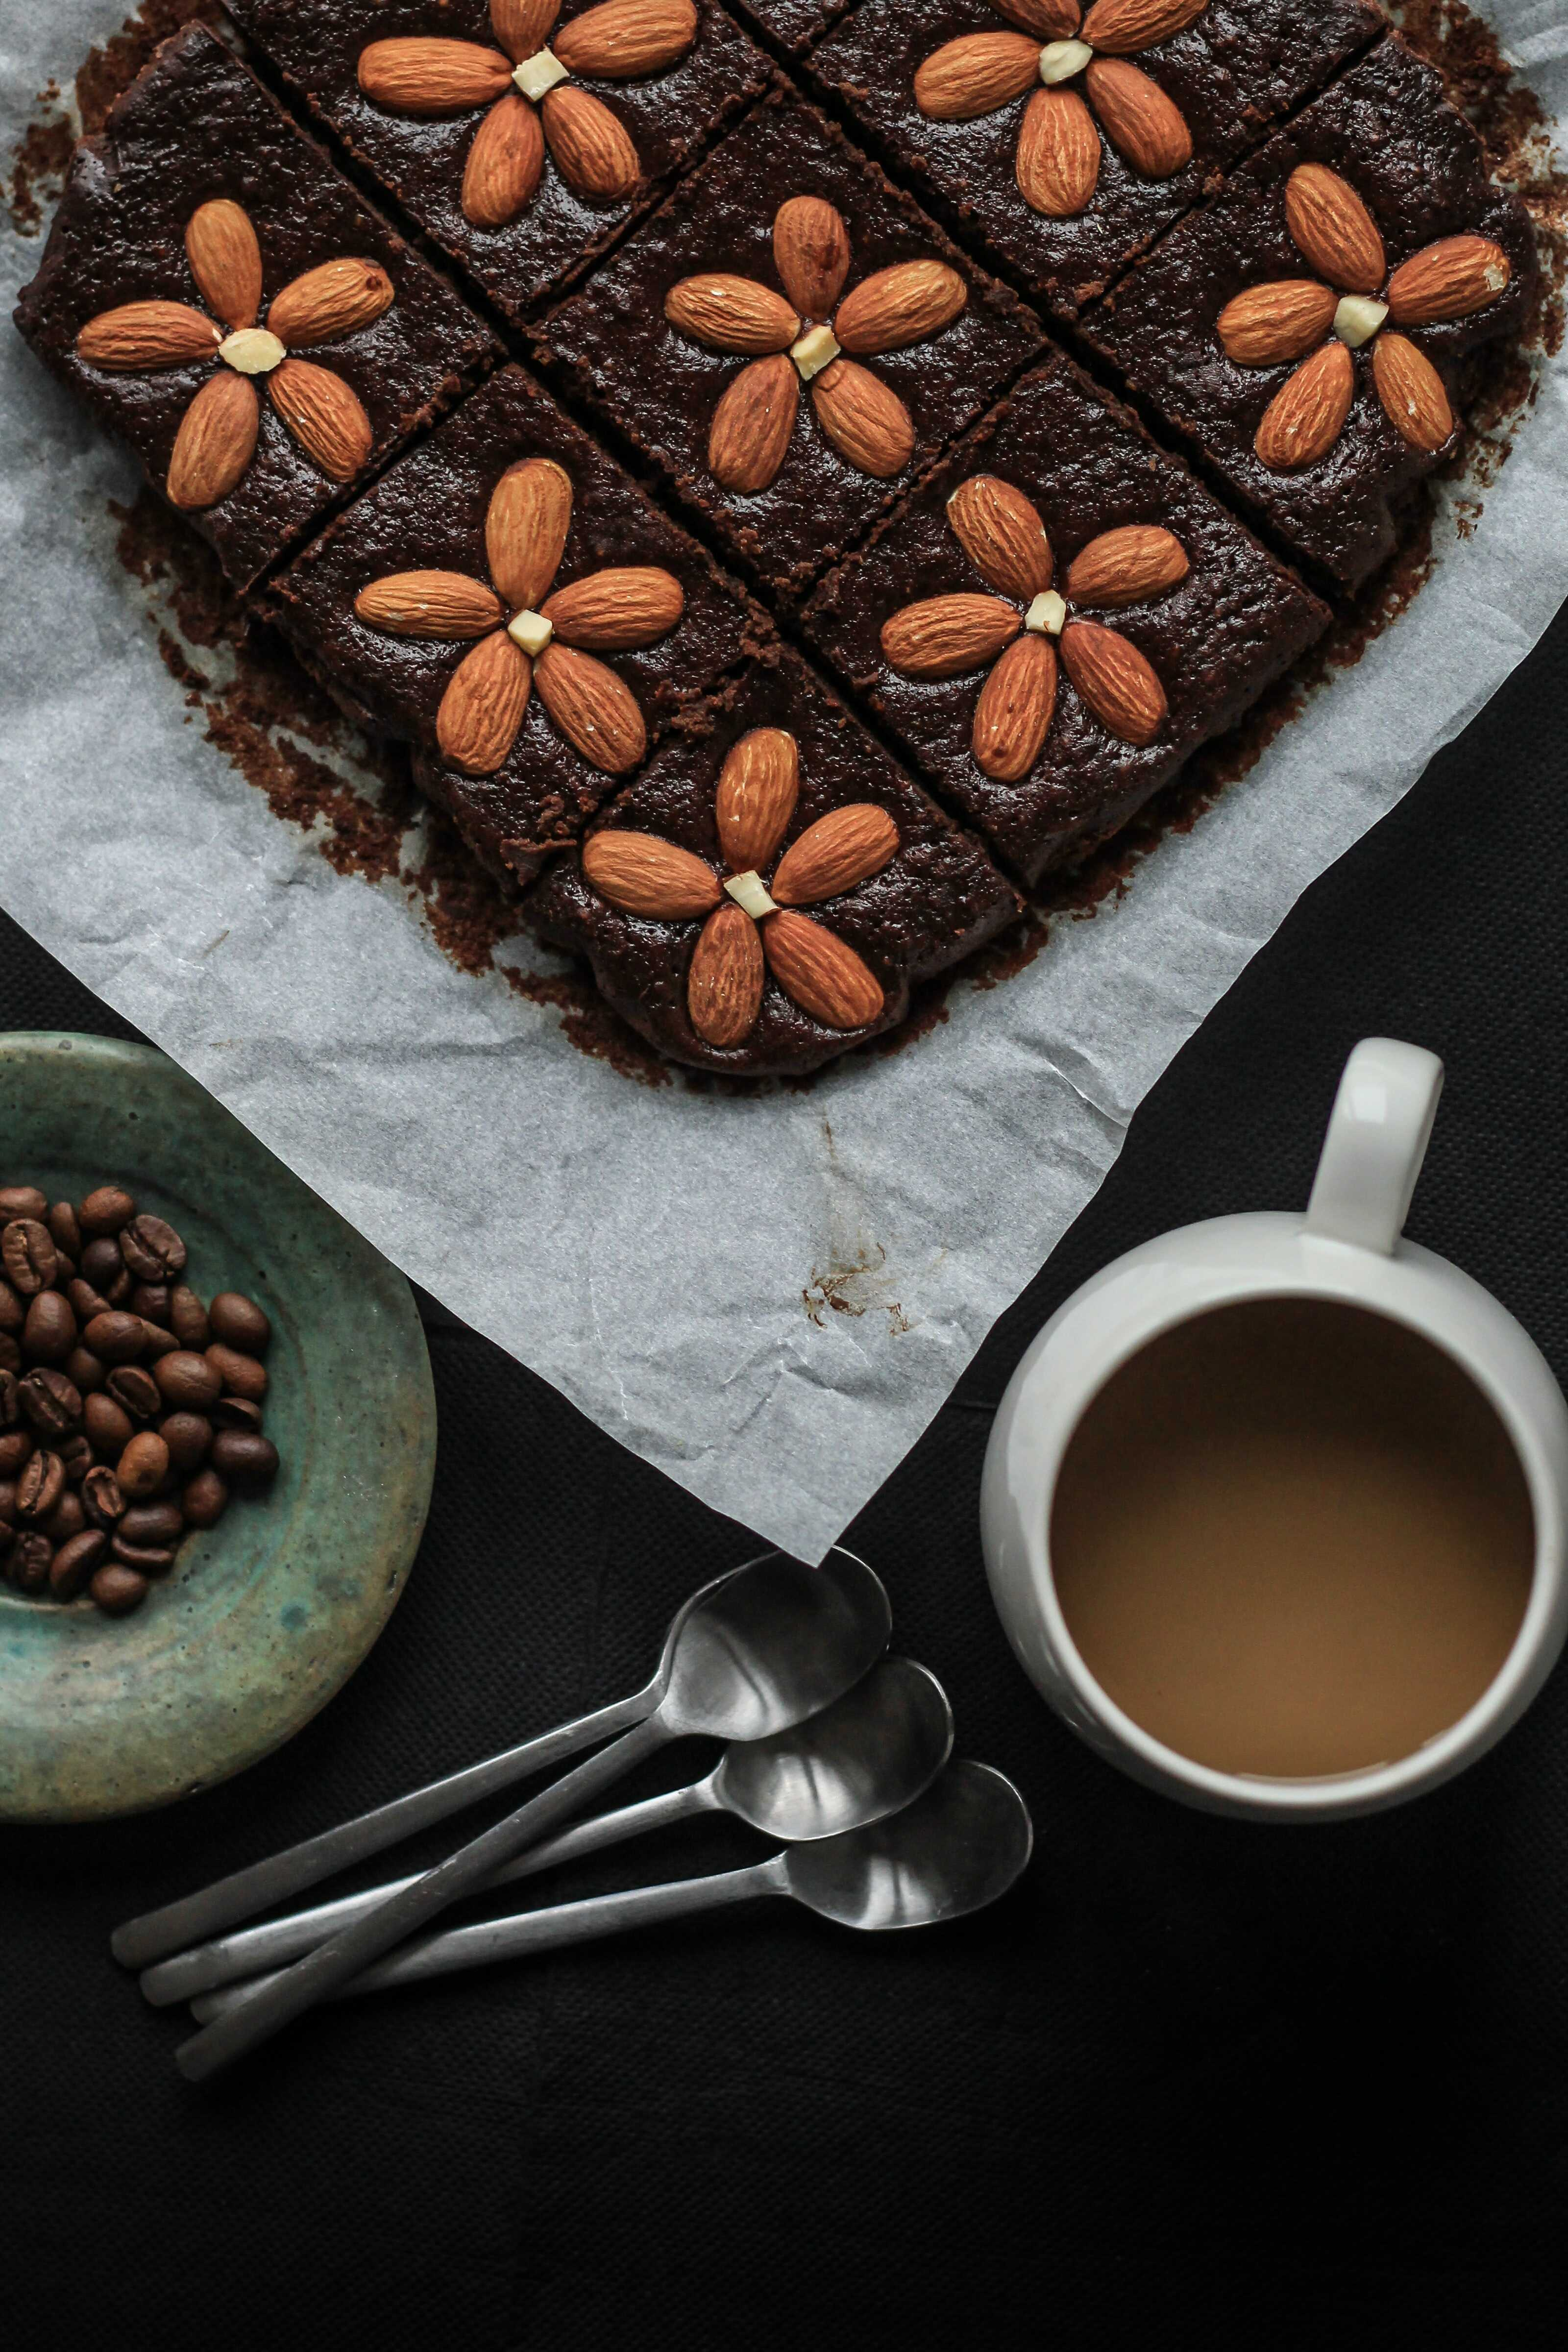 a chocolate cake decorated with almond as a flower